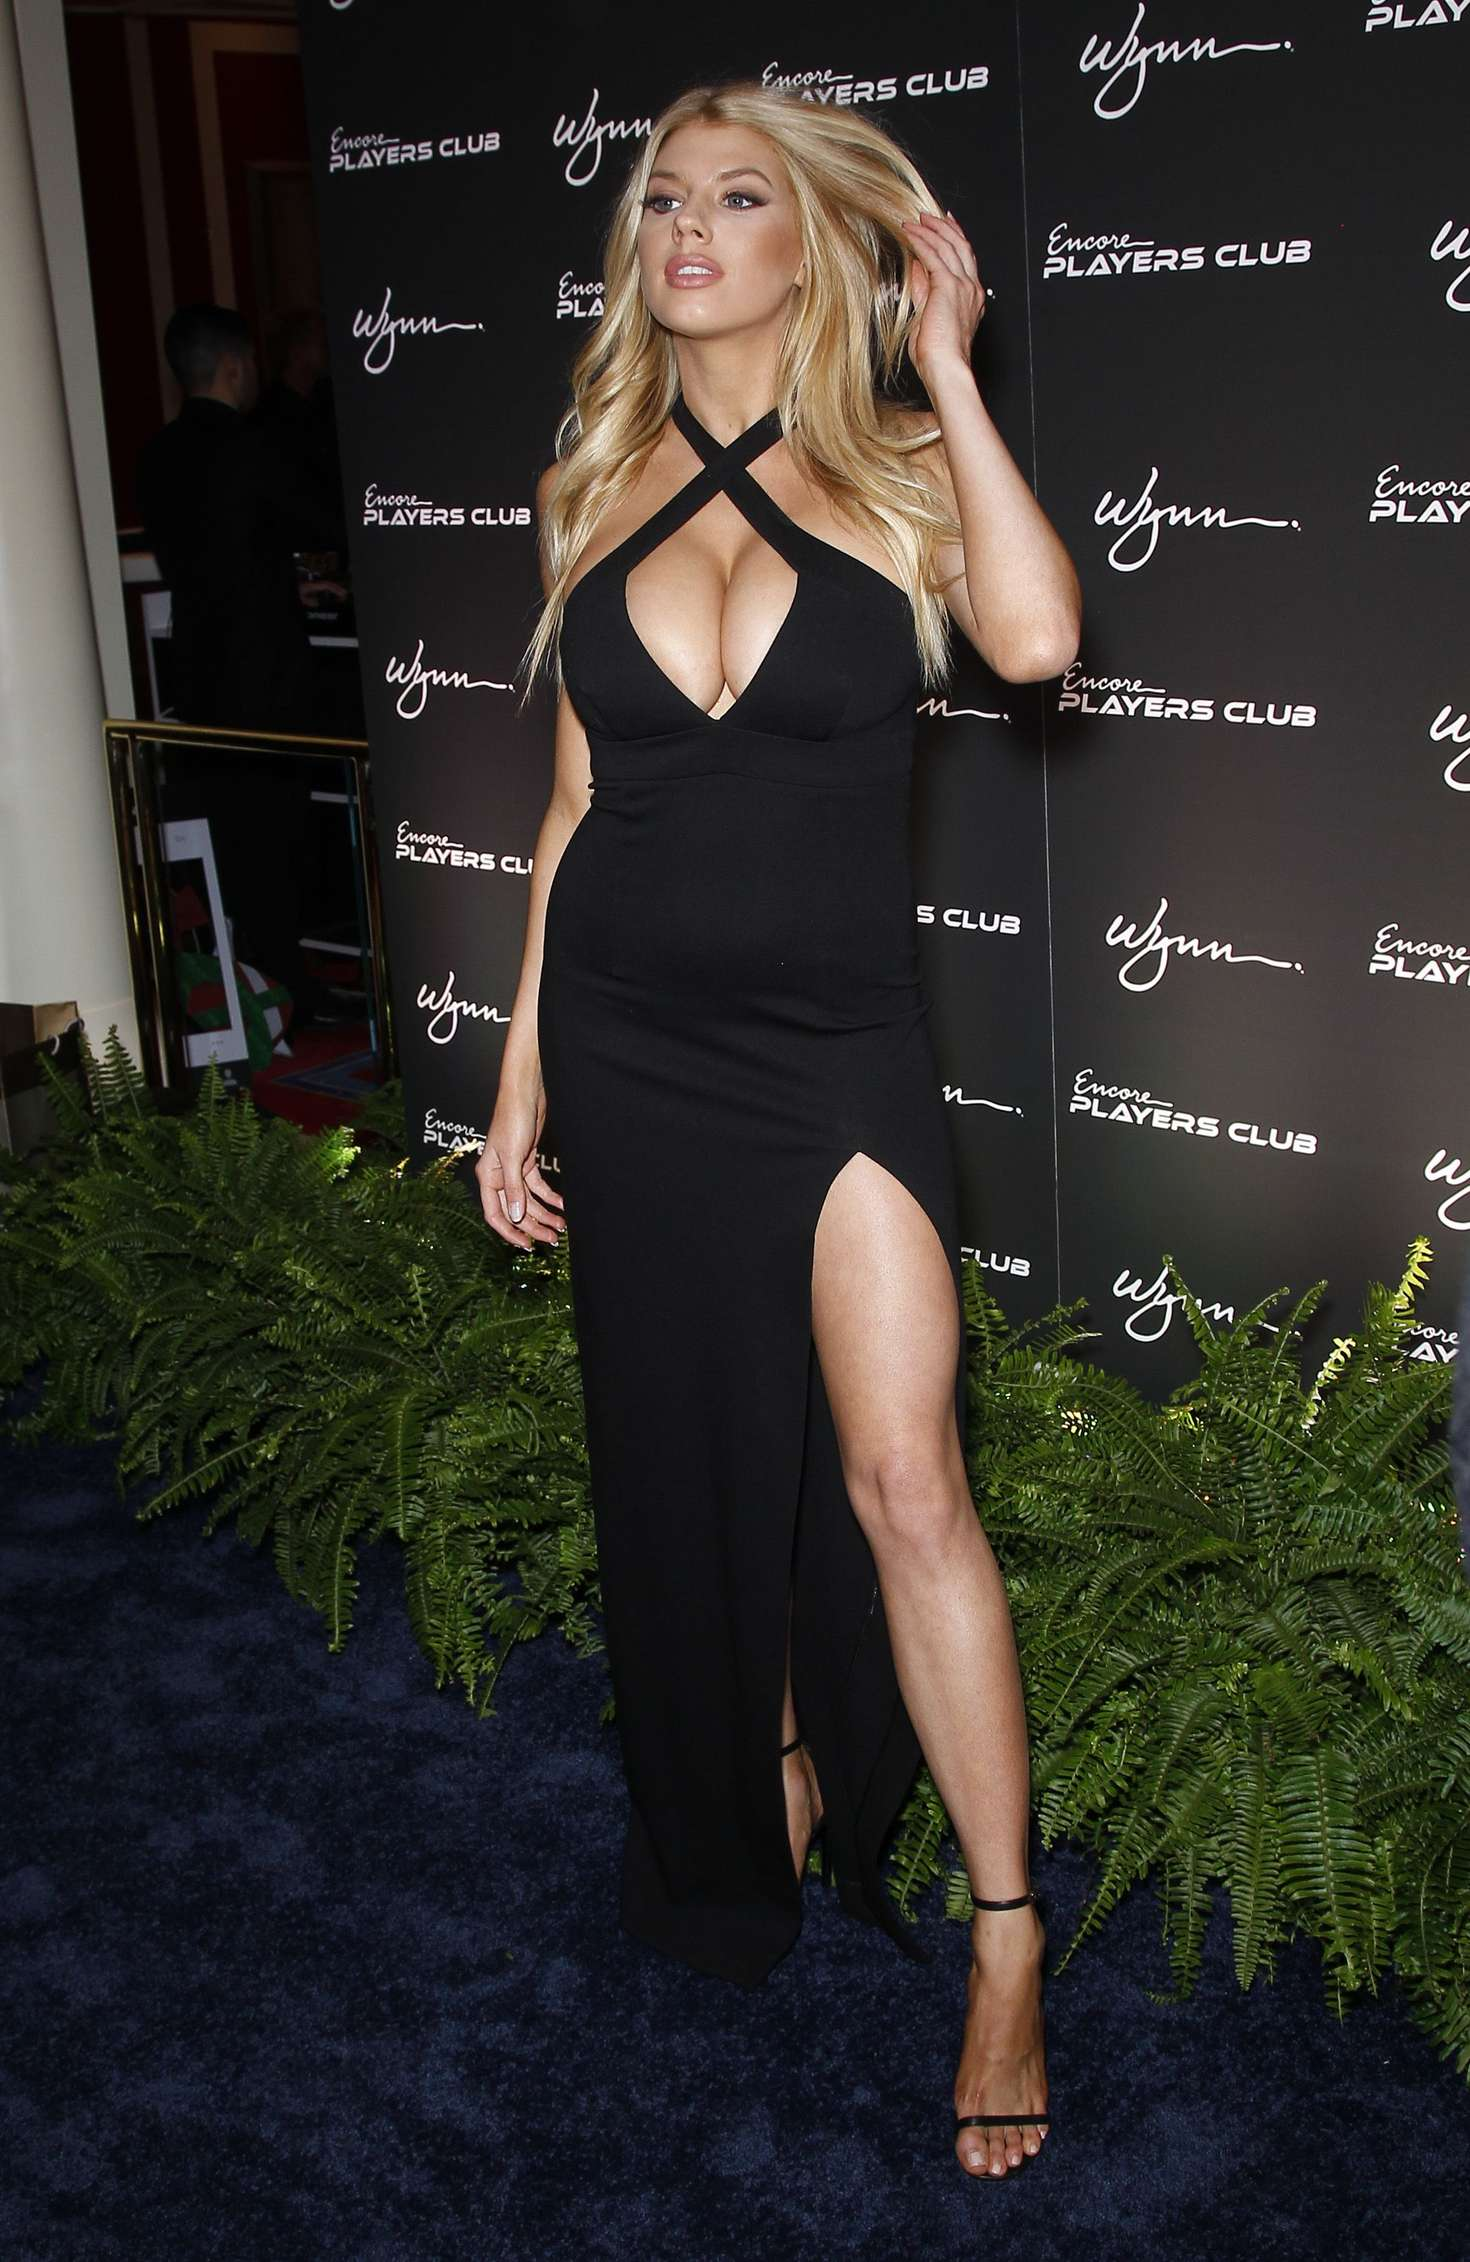 Charlotte McKinney 2016 : Charlotte McKinney: Encore Players Club Grand Opening -02